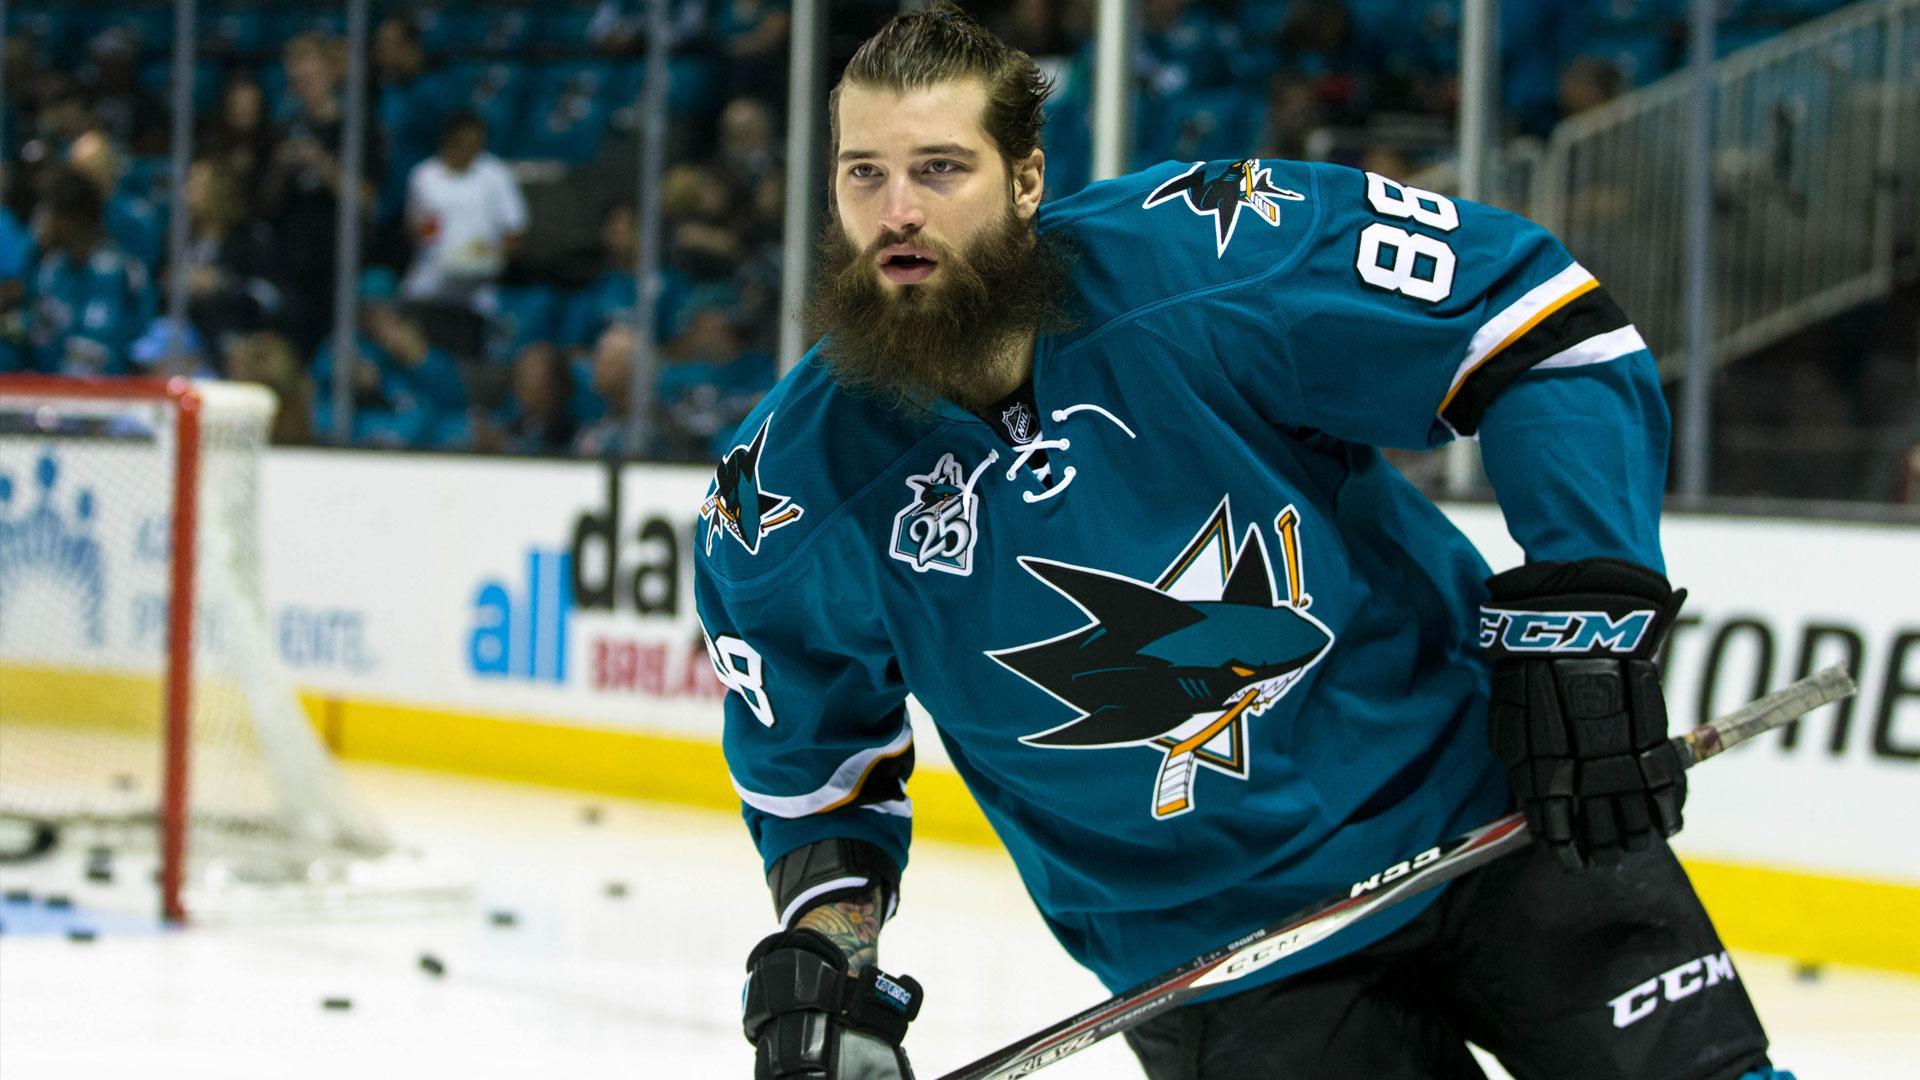 Burns shows love for San Jose after signing extension with Sharks